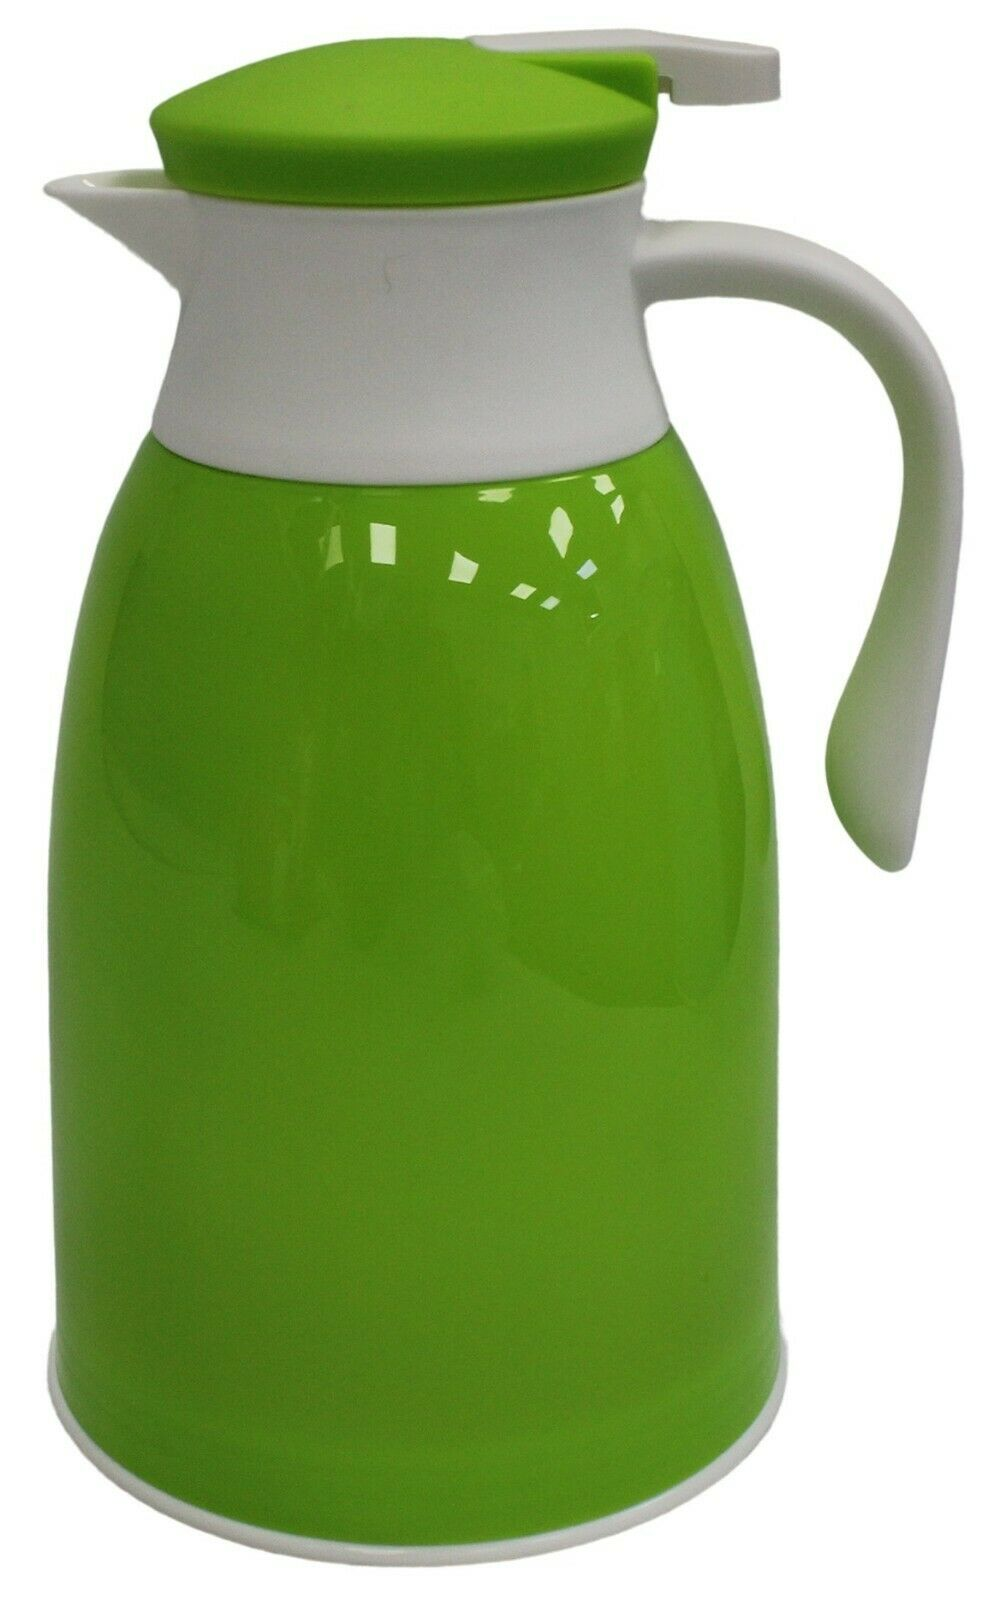 1 Litre Insulated Jug Ideal For Hot or Cold Coffee Tea Insulated Vacuum Teapot